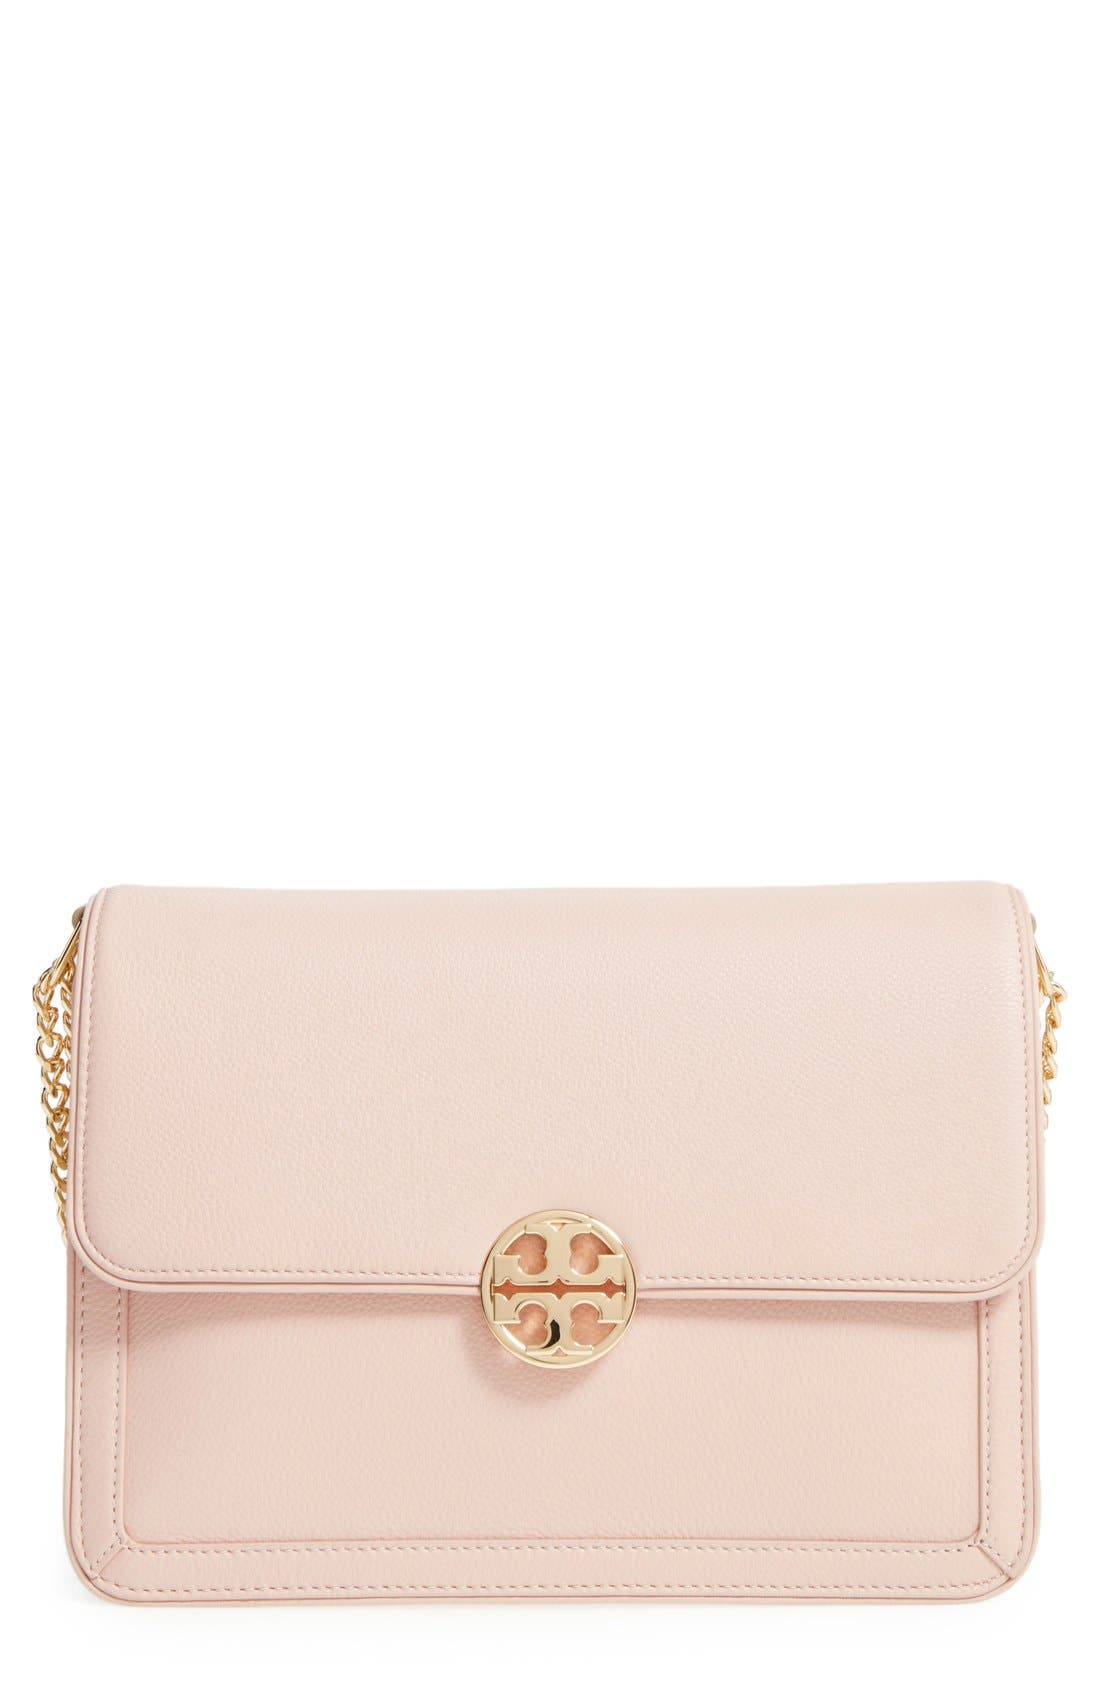 Alternate Image 1 Selected - Tory Burch Large Duet Leather Shoulder Bag